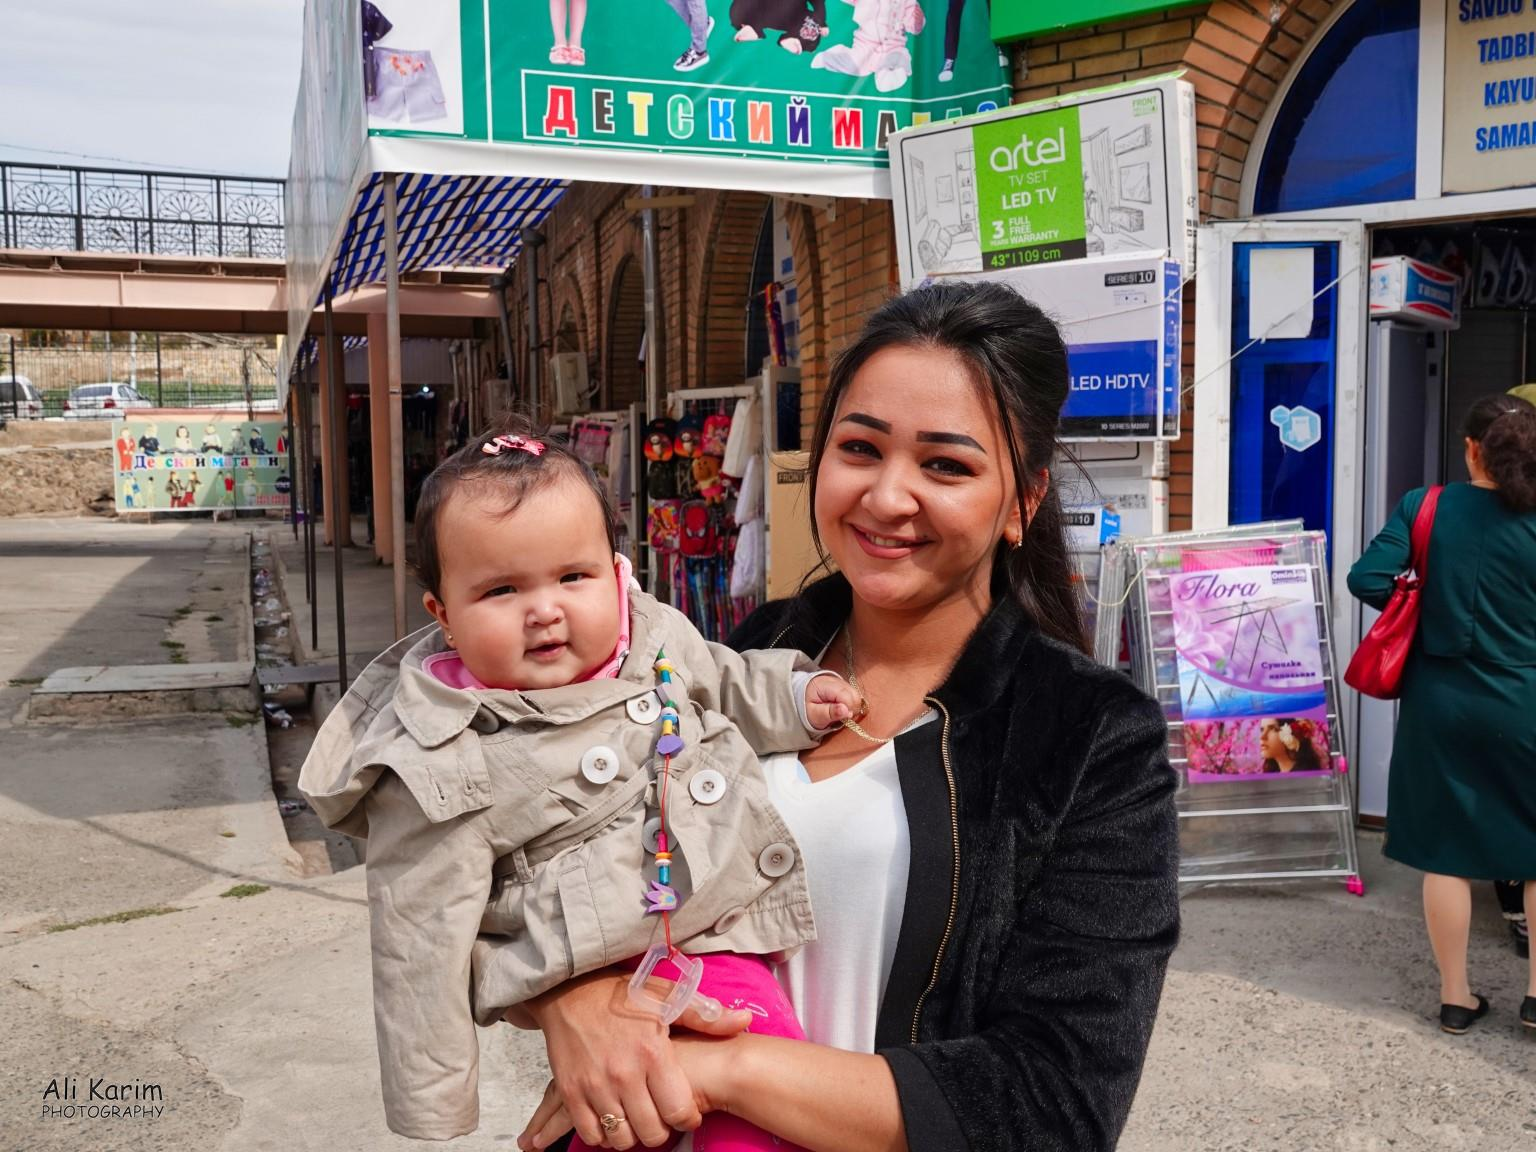 More Samarkand, Locals were all very friendly. Wonder what she was feeding her baby; look at the size of those cheeks :)